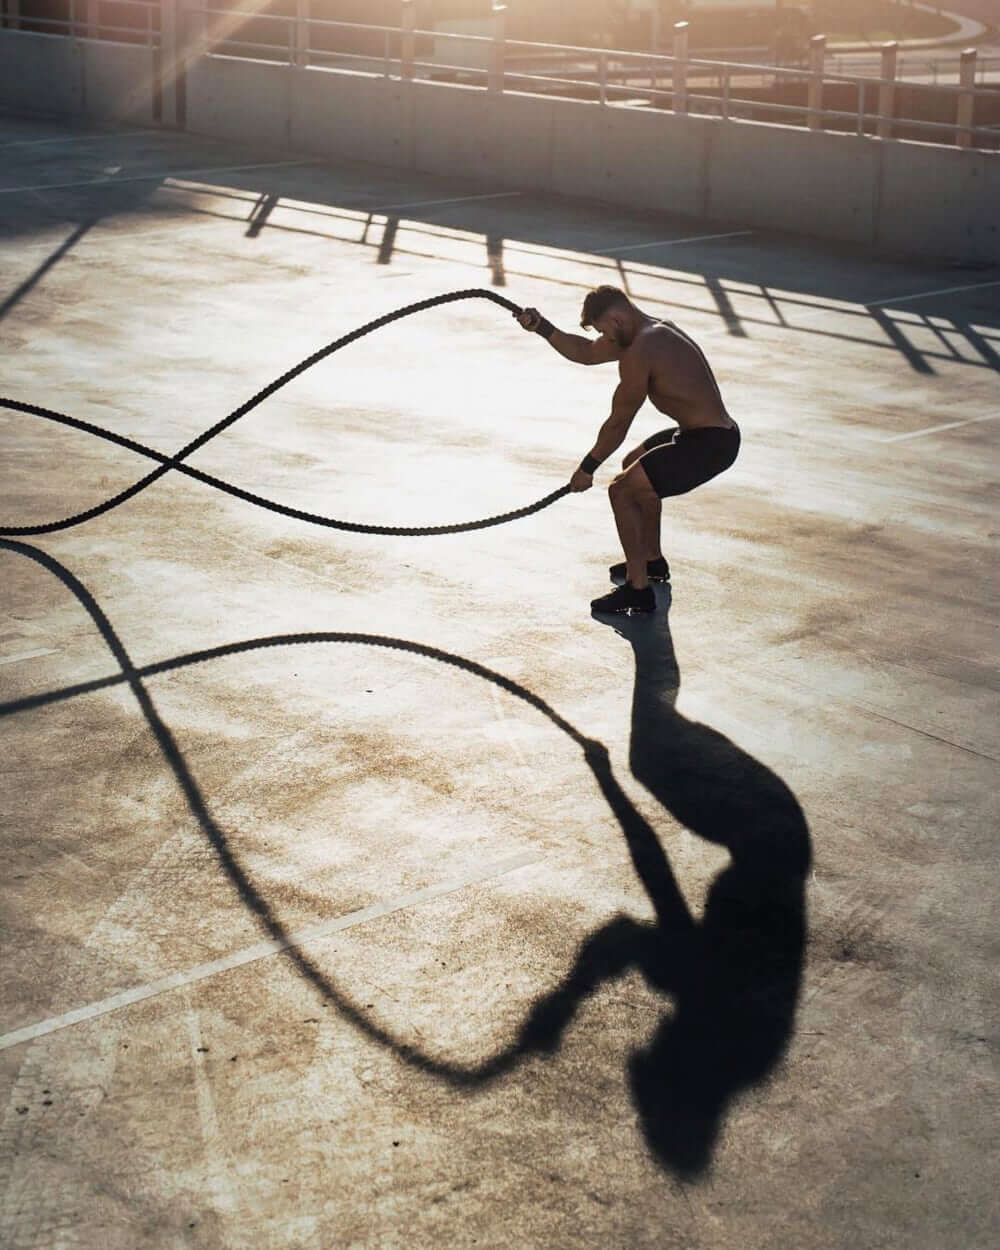 How to use battling ropes - a beginners exercise guide